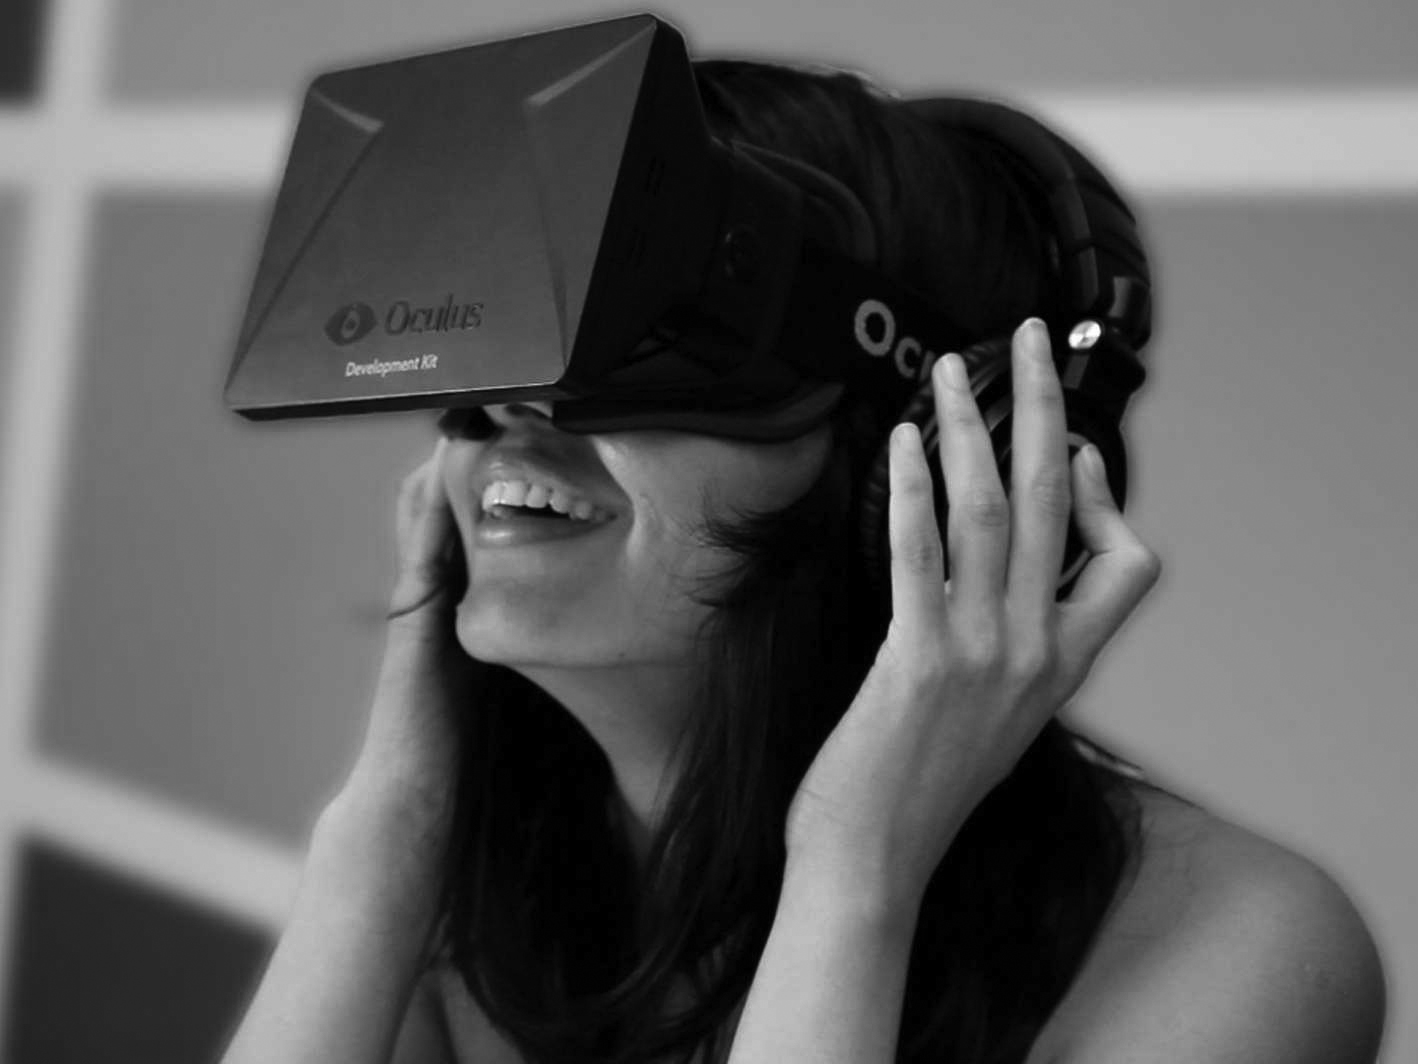 The Oculus VR could be available for purchase by the end of 2015.  Photo Courtesy of Twinfinite